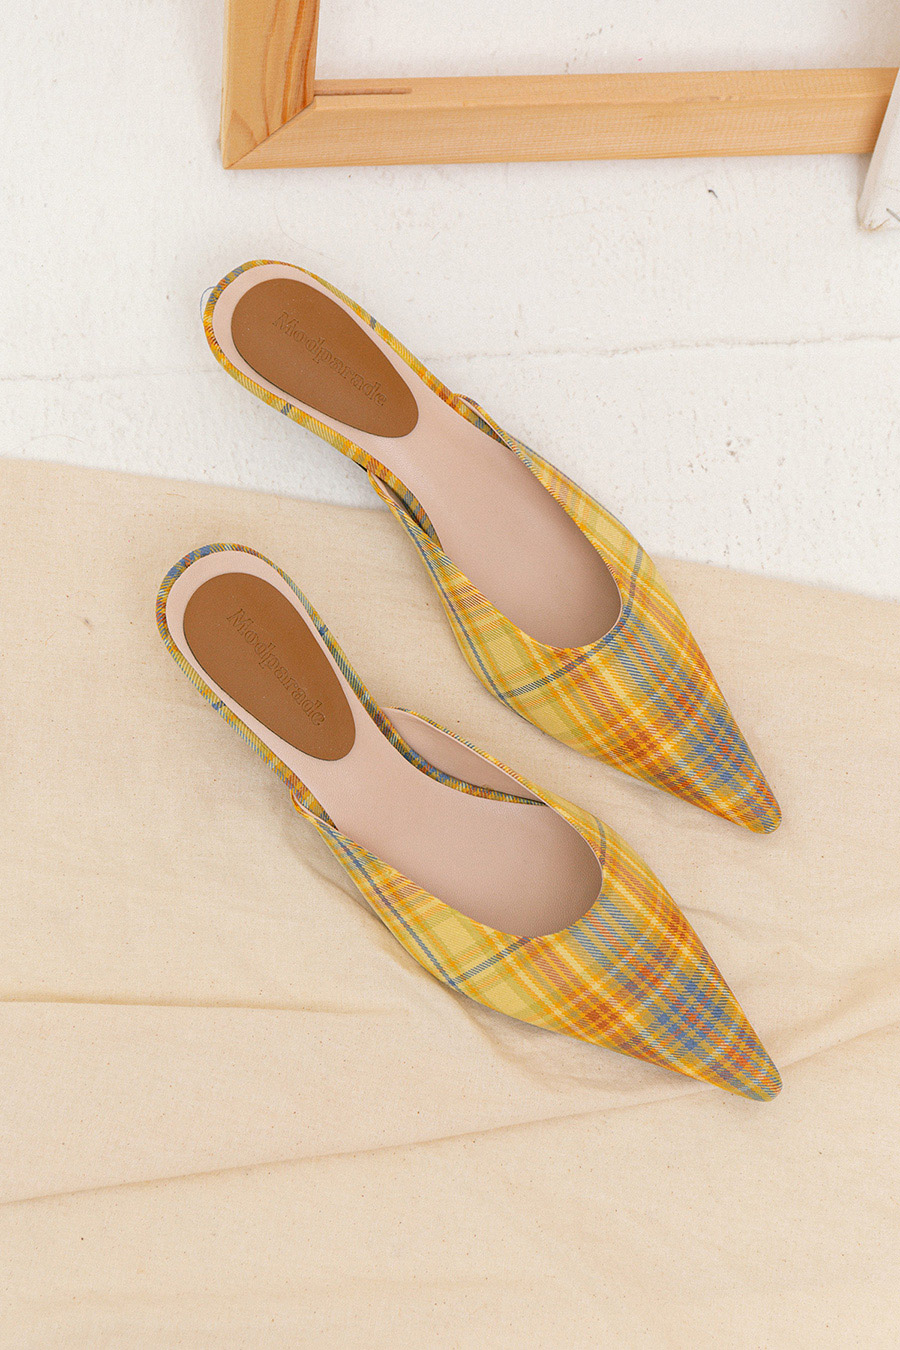 SOLENNE SHOES - BARBERRY